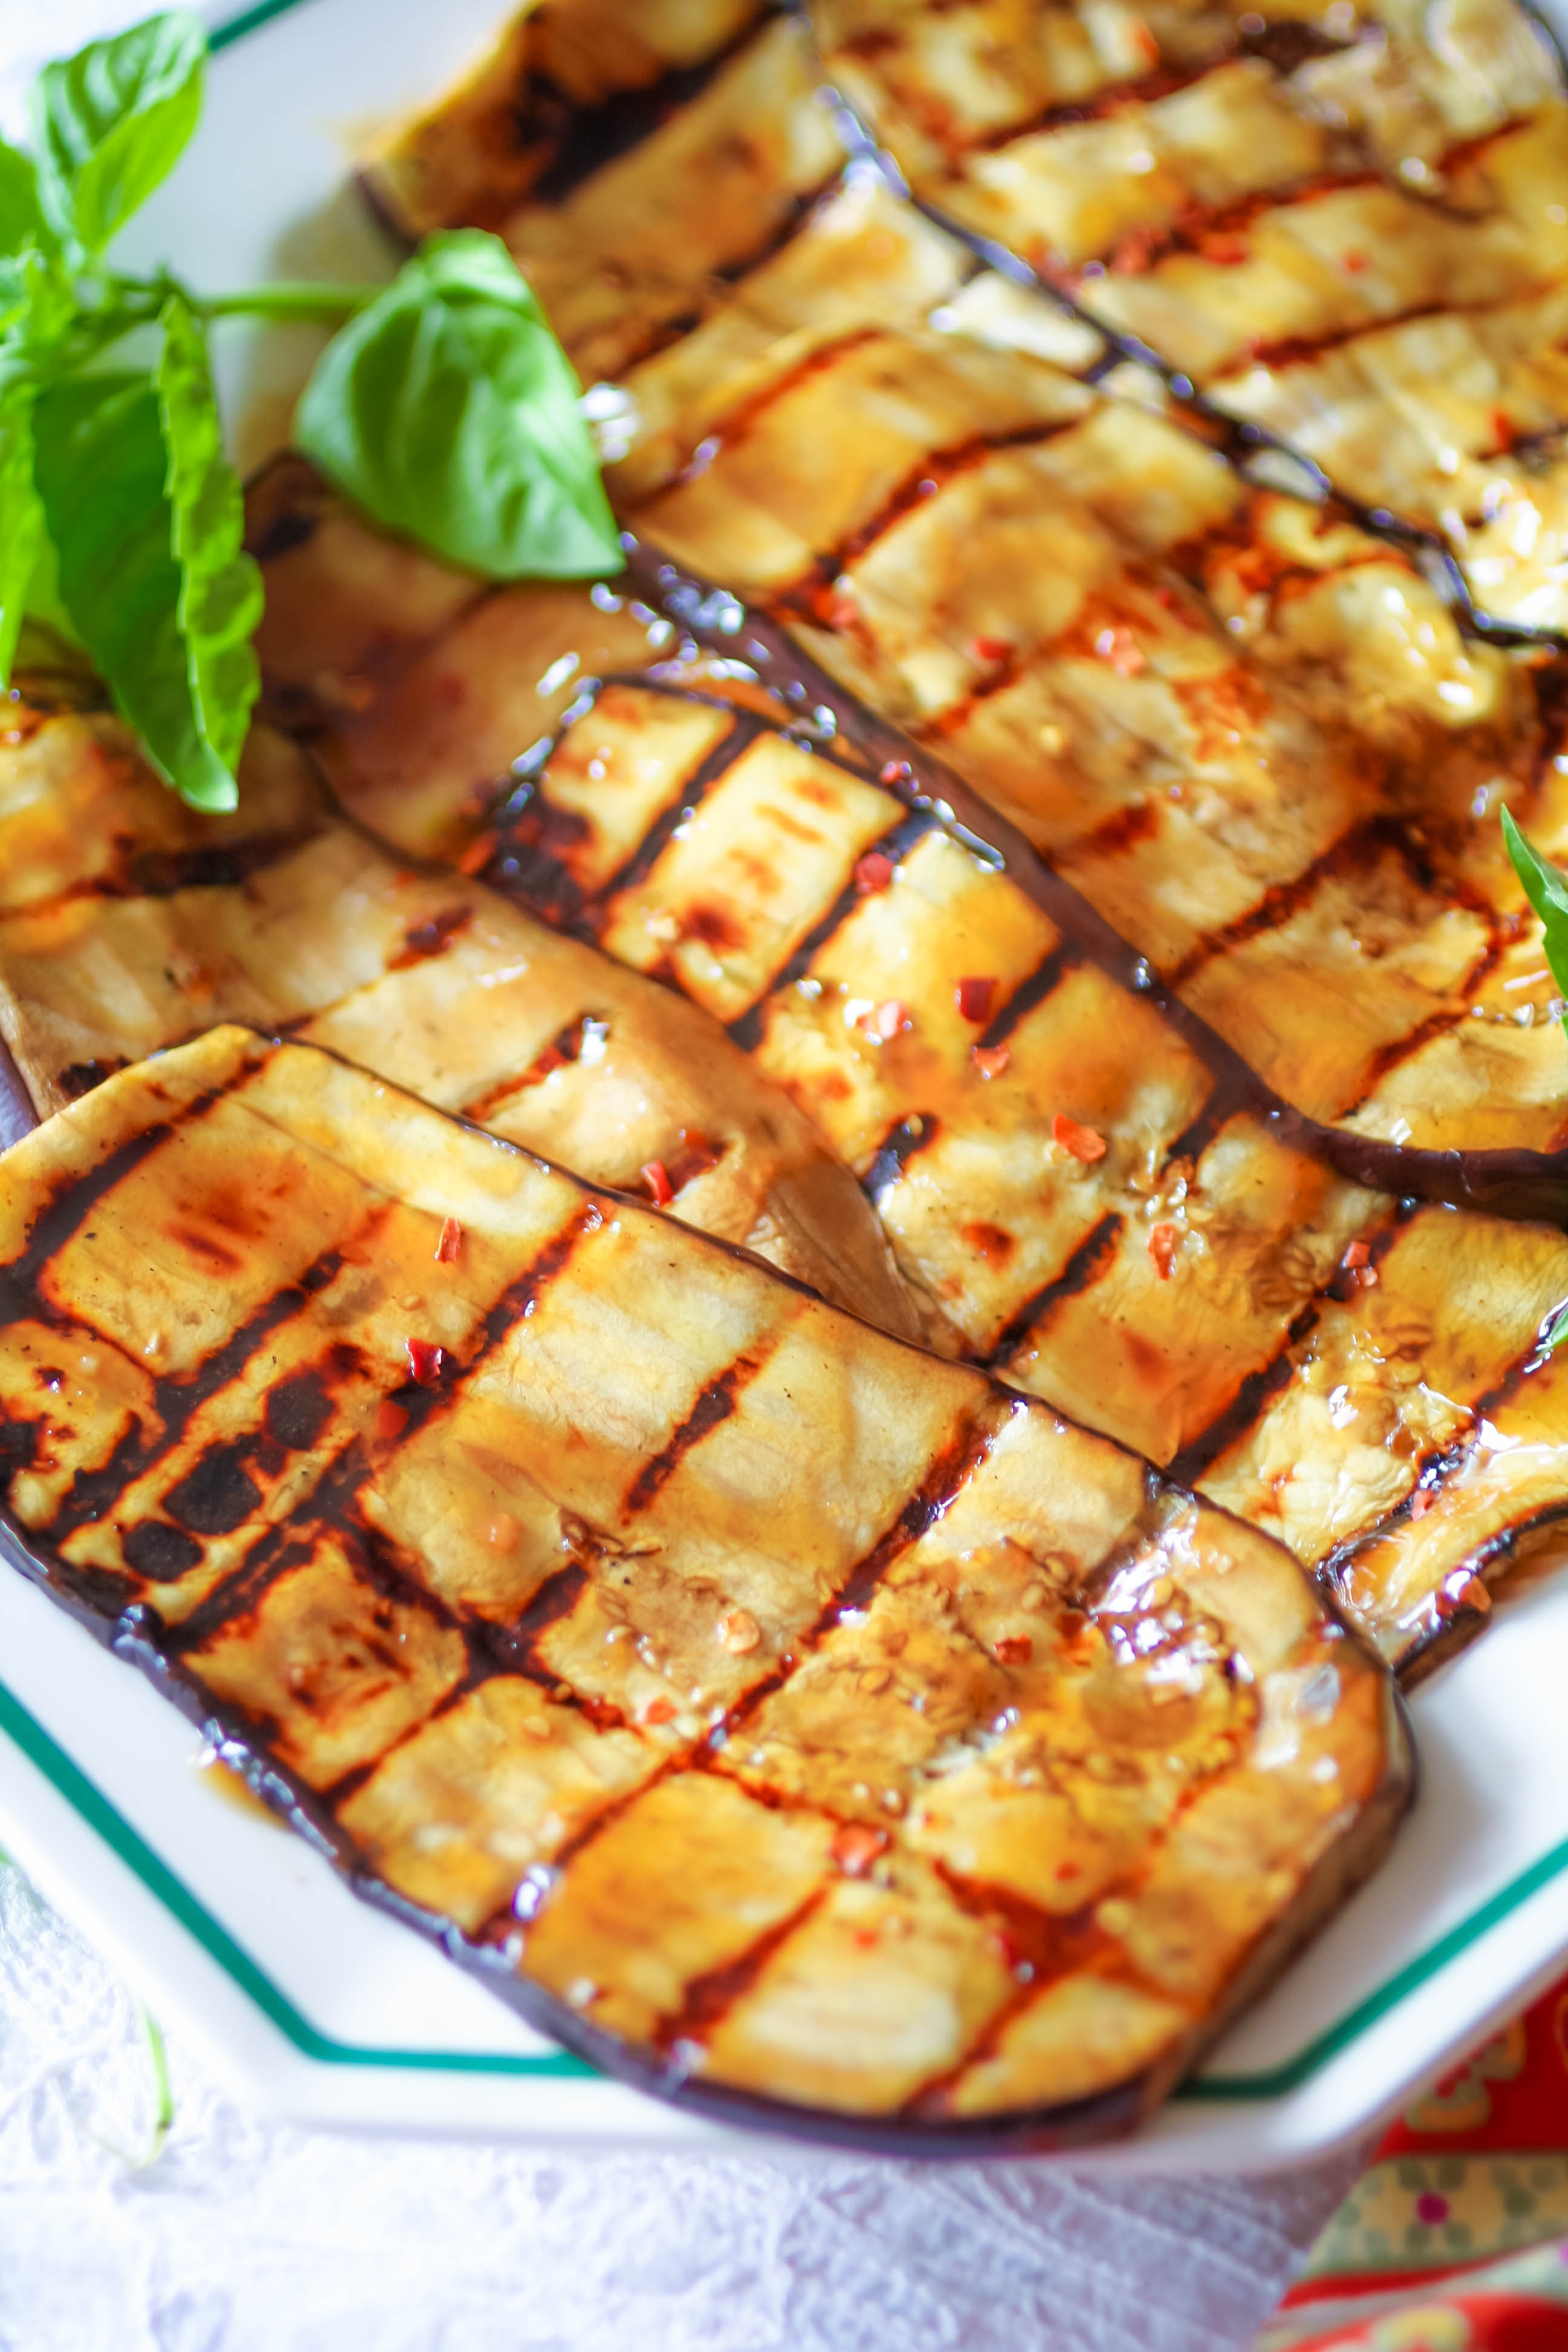 Grilled Eggplant with Teriyaki is a tasty summer dish. Grilled Eggplant with Teriyaki is great for a grilled dish!